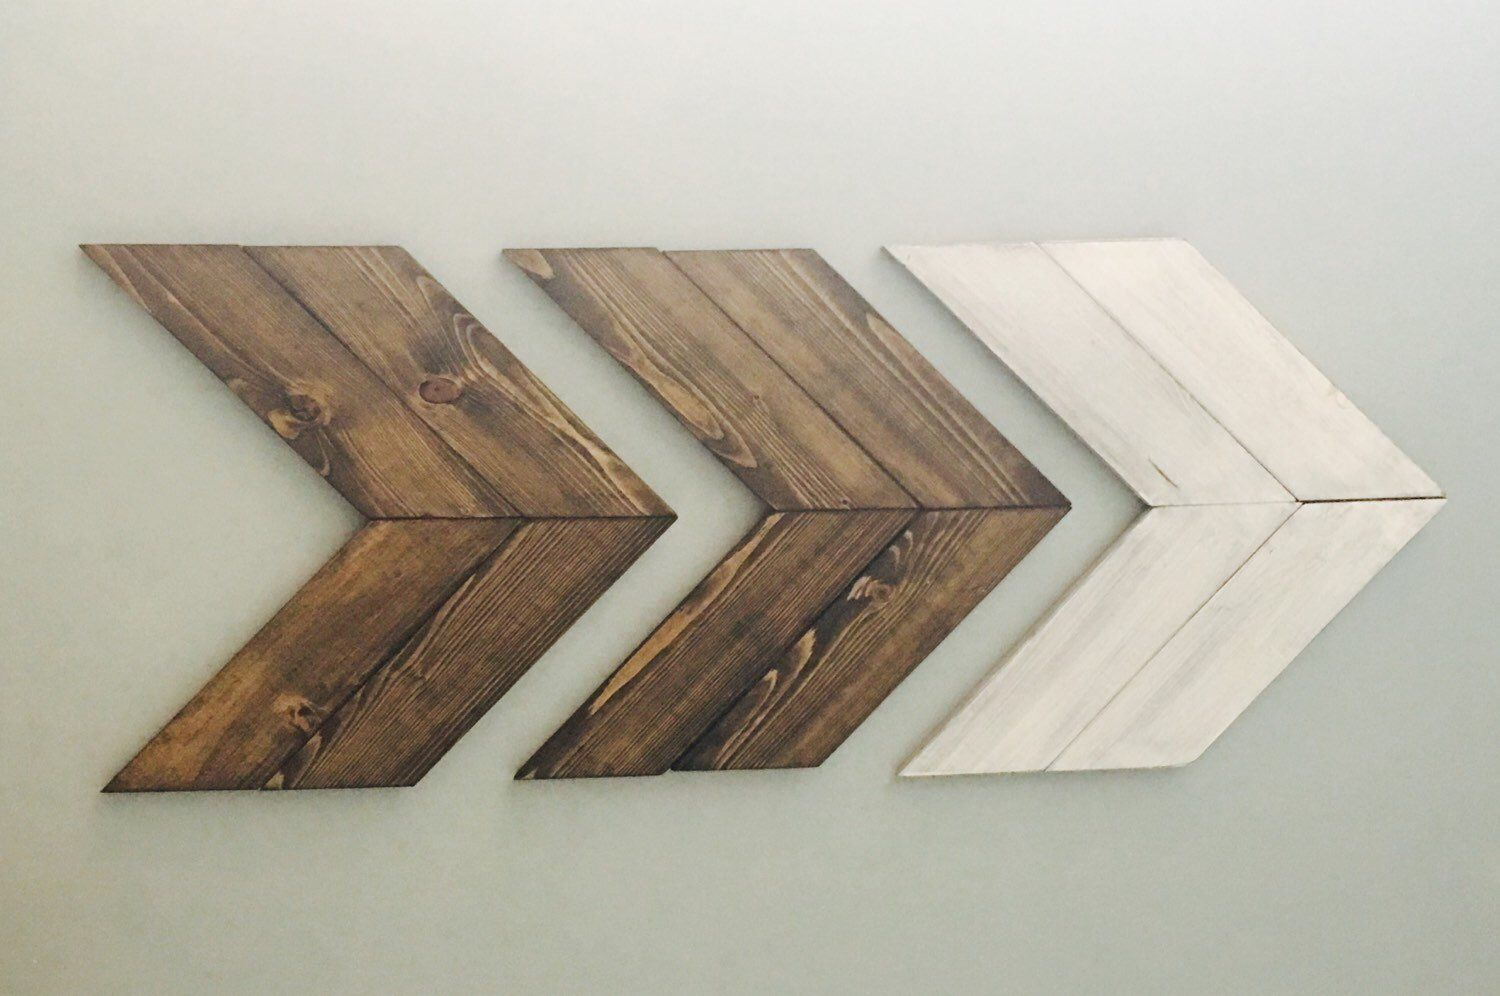 Diy Chevron Wood Arrows Diy Wood Projects Wood Diy Wood